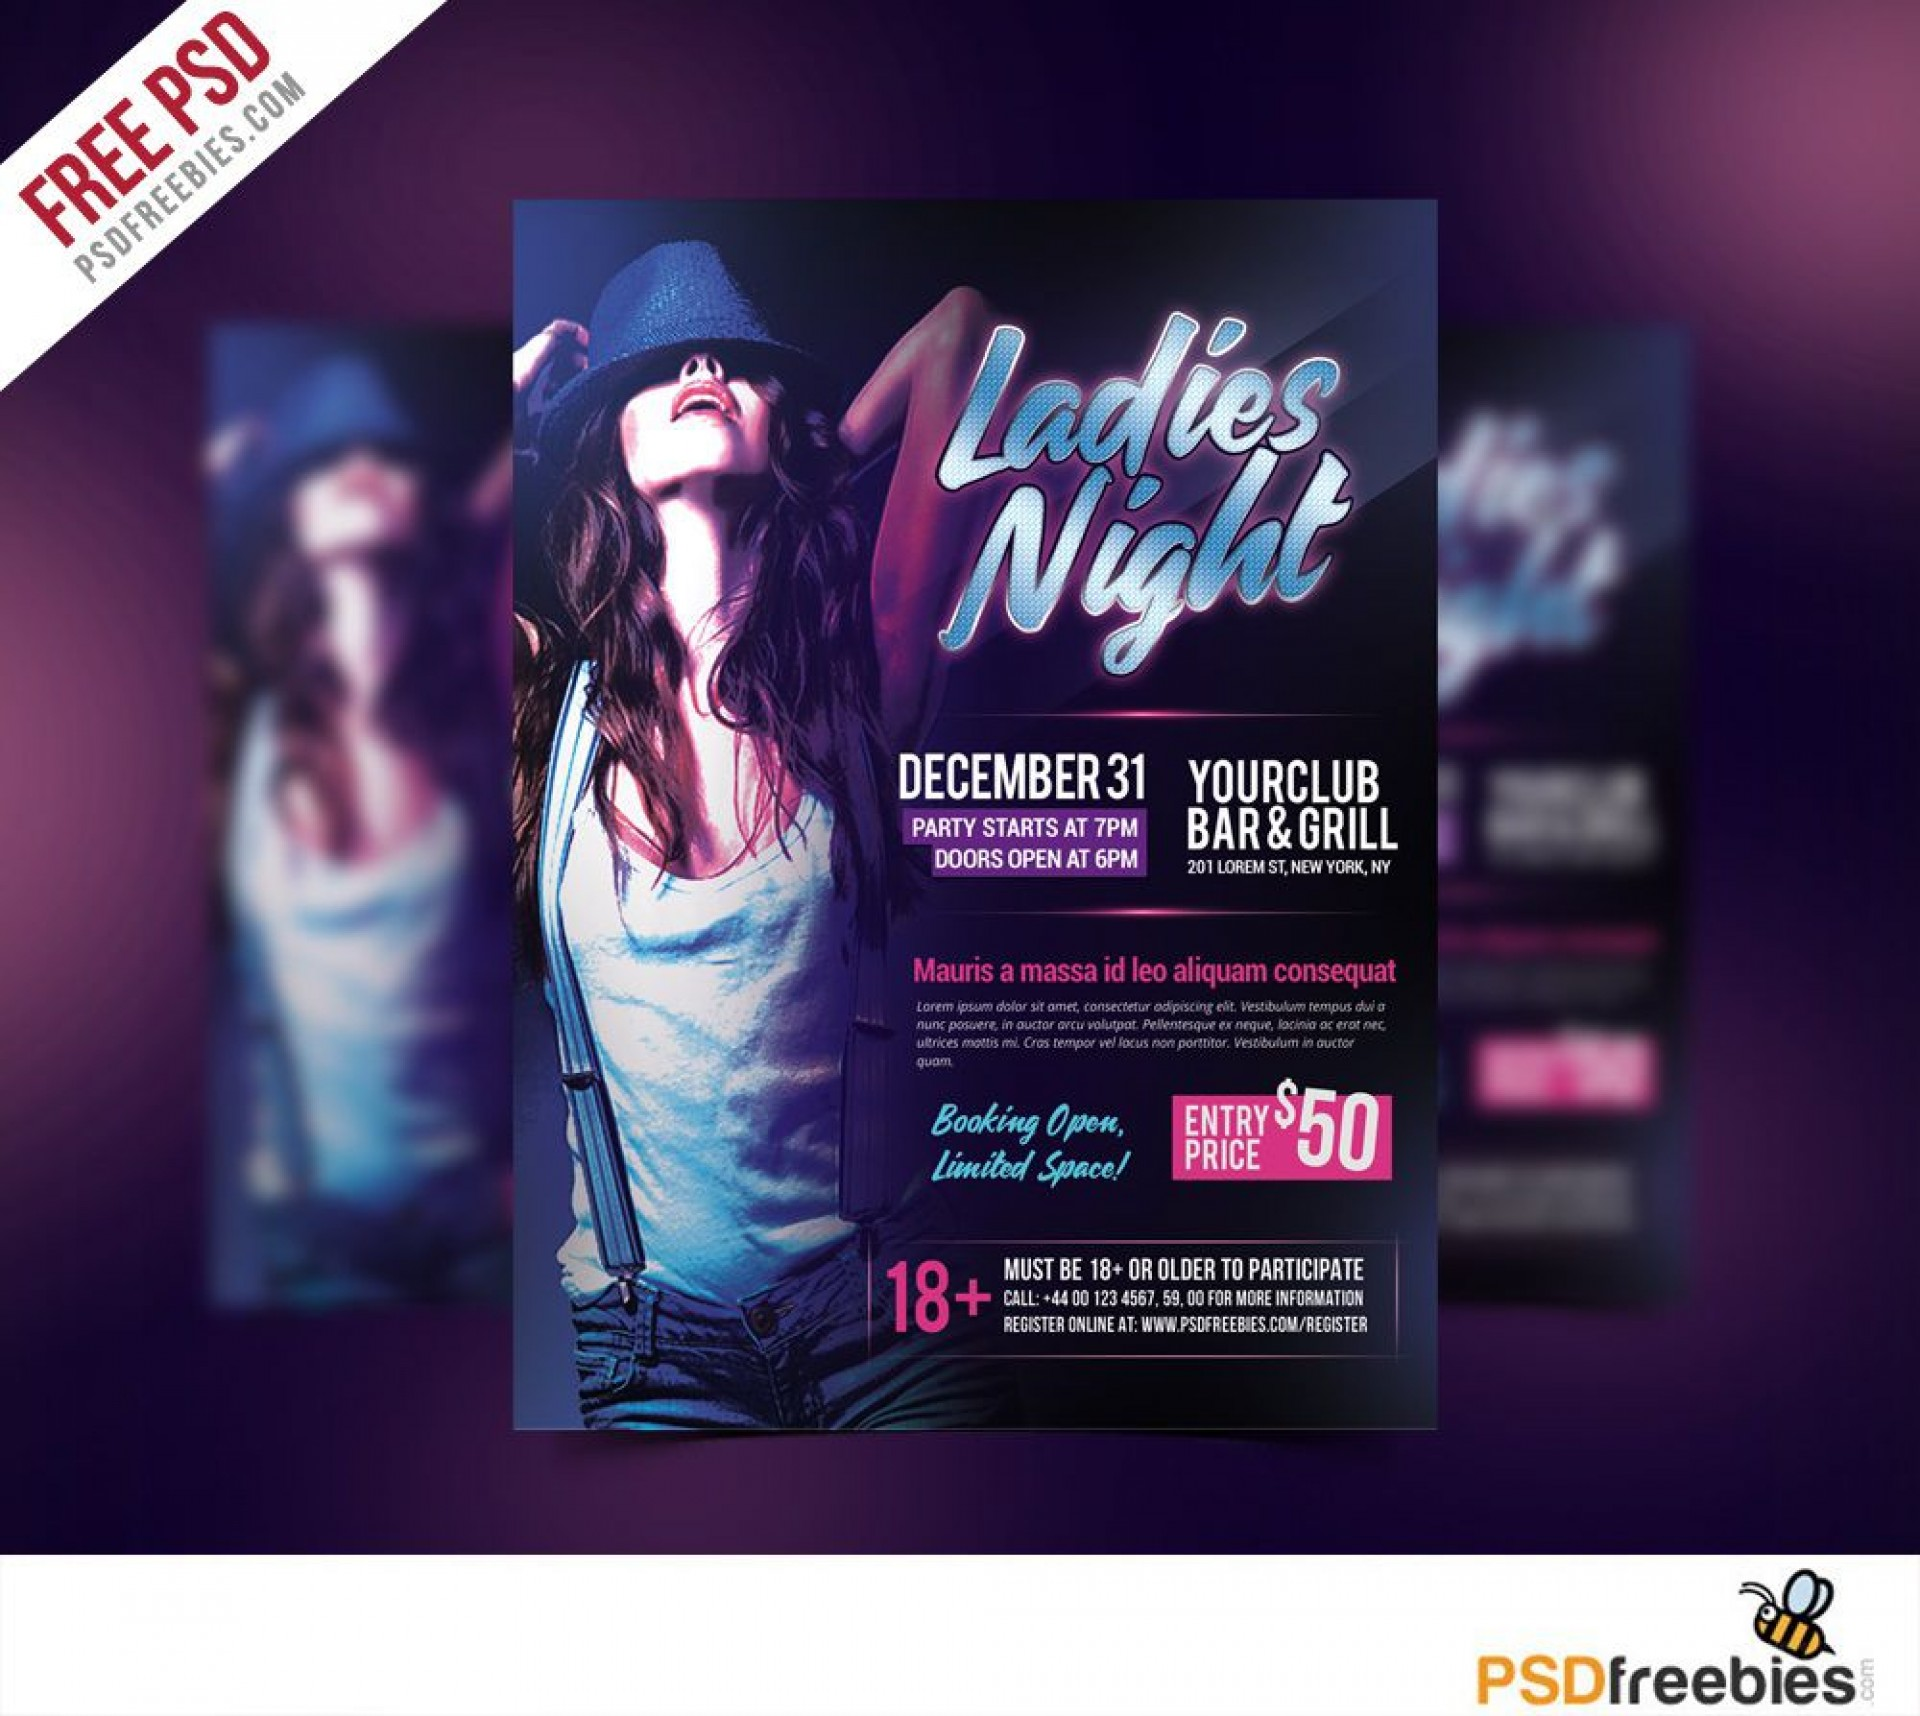 007 Phenomenal Free Psd Party Flyer Template Download Concept  - Neon Glow Rave1920